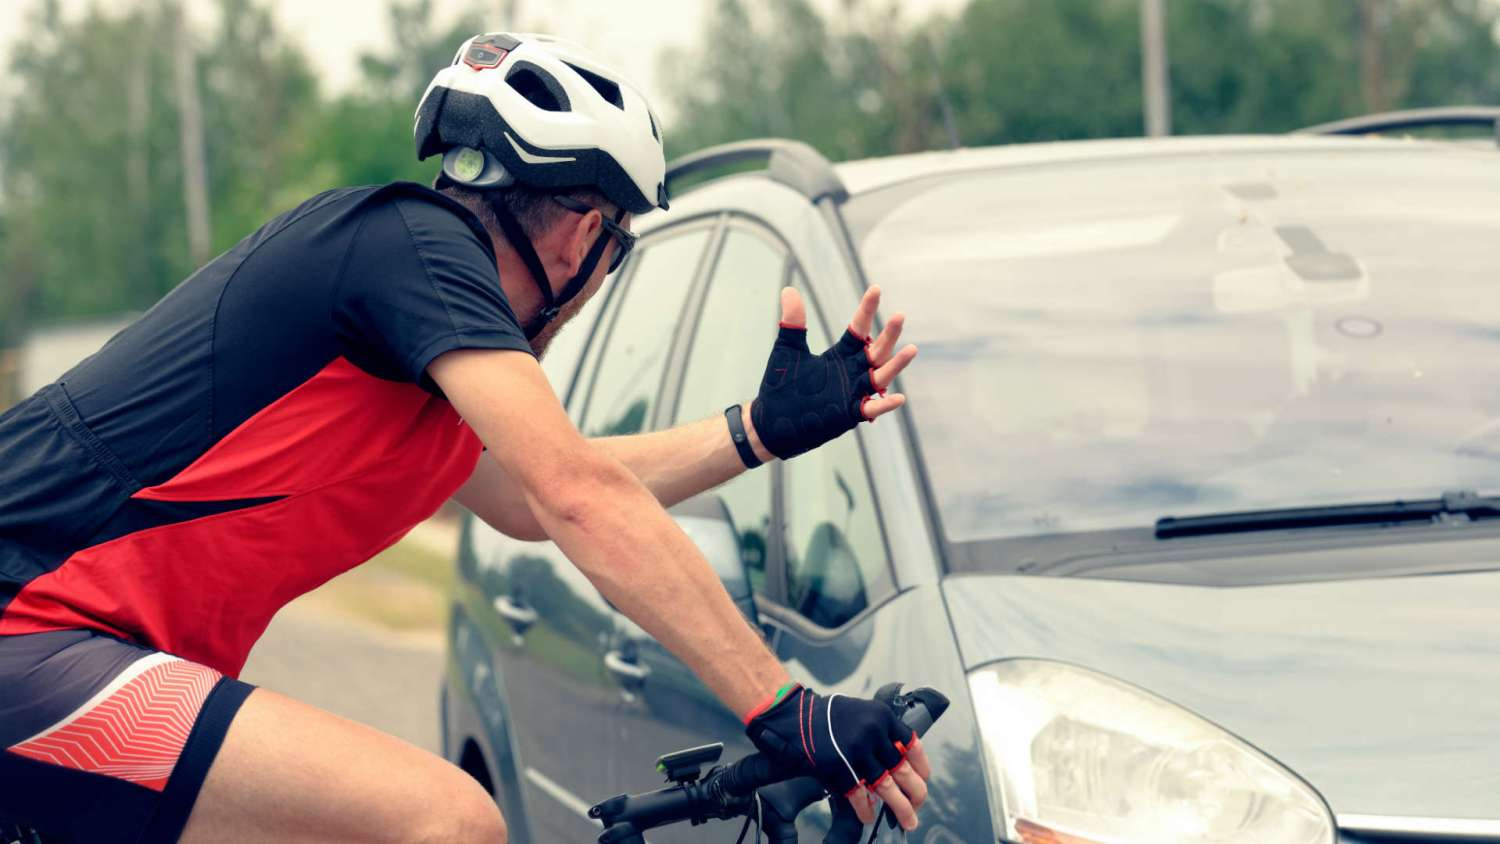 Cyclist arguing with a driver